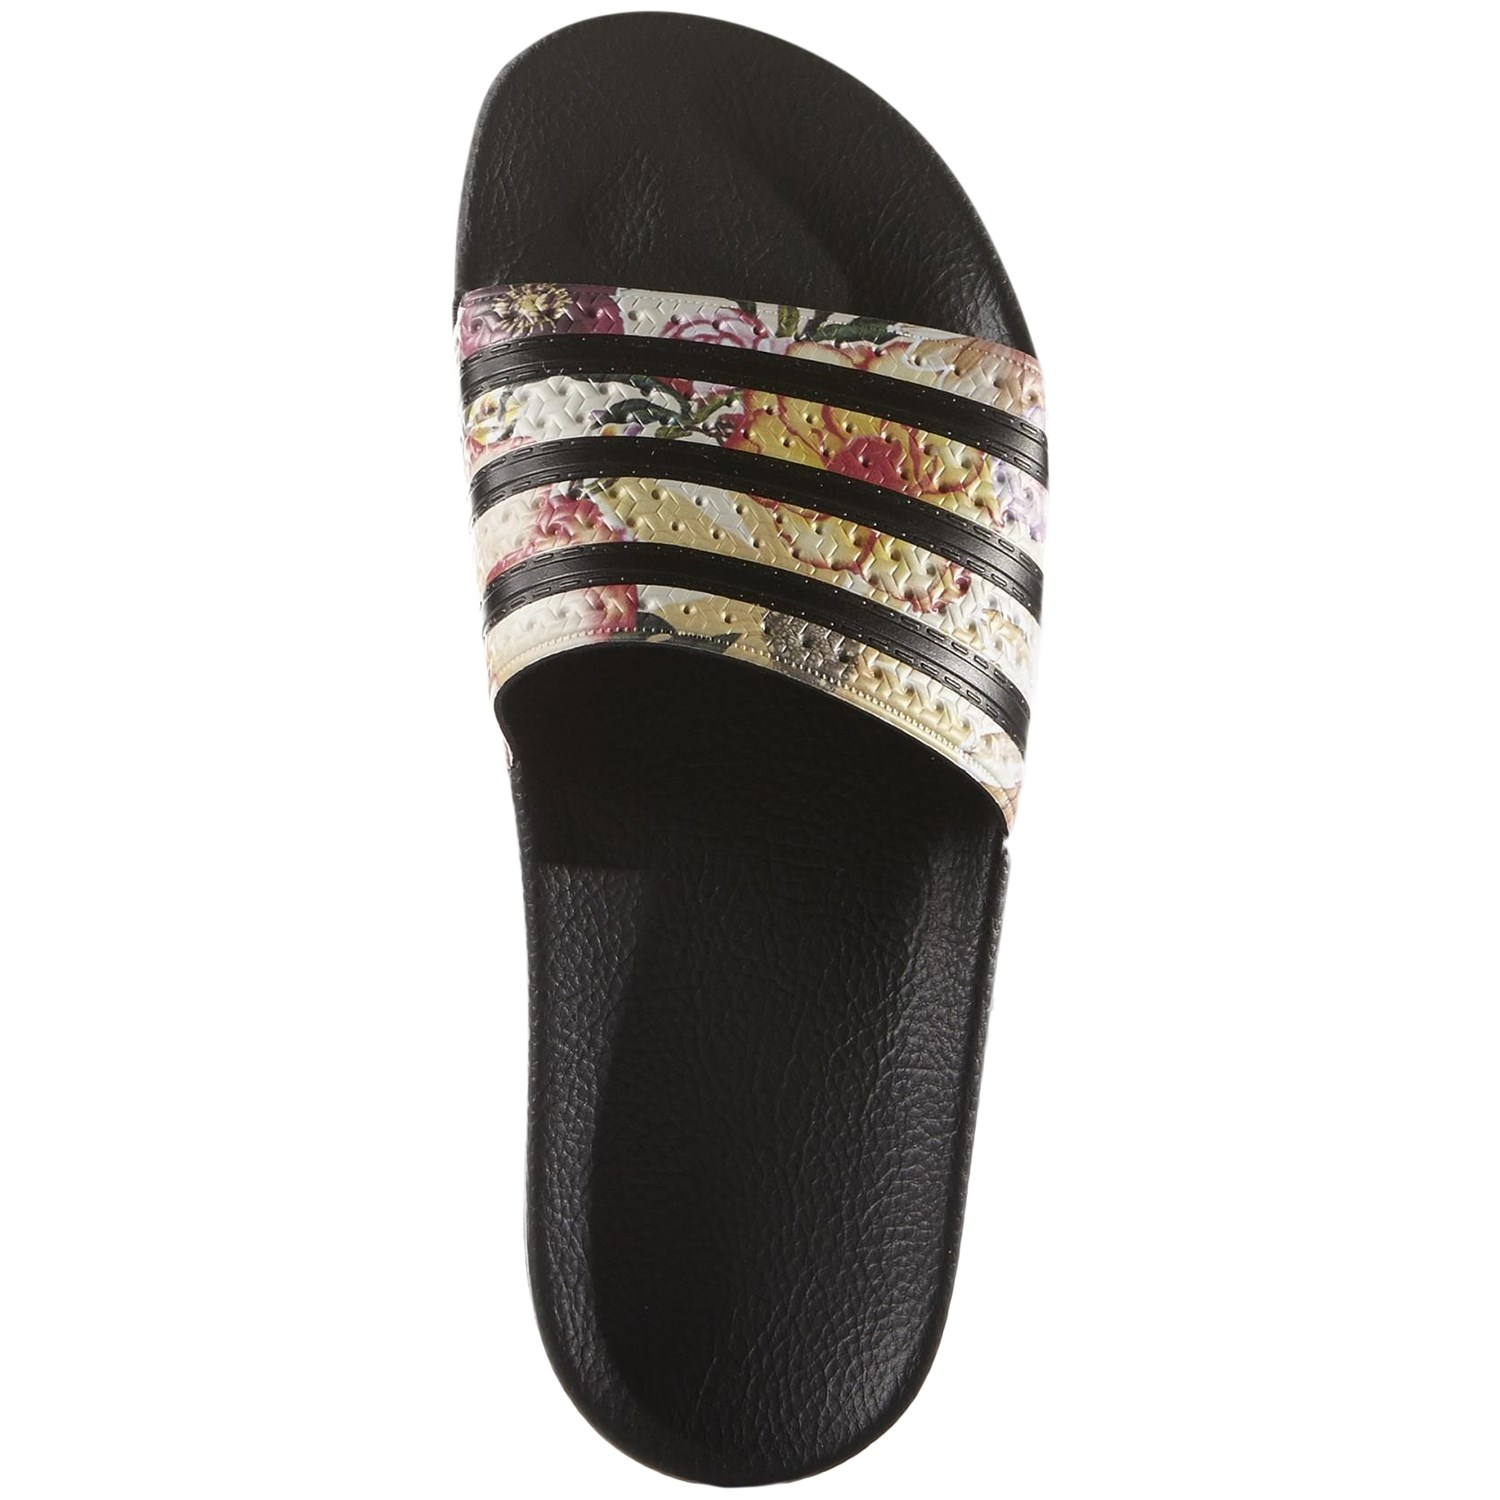 3d9a7ae71751 Adidas Originals Adilette Slide Sandals - Women s